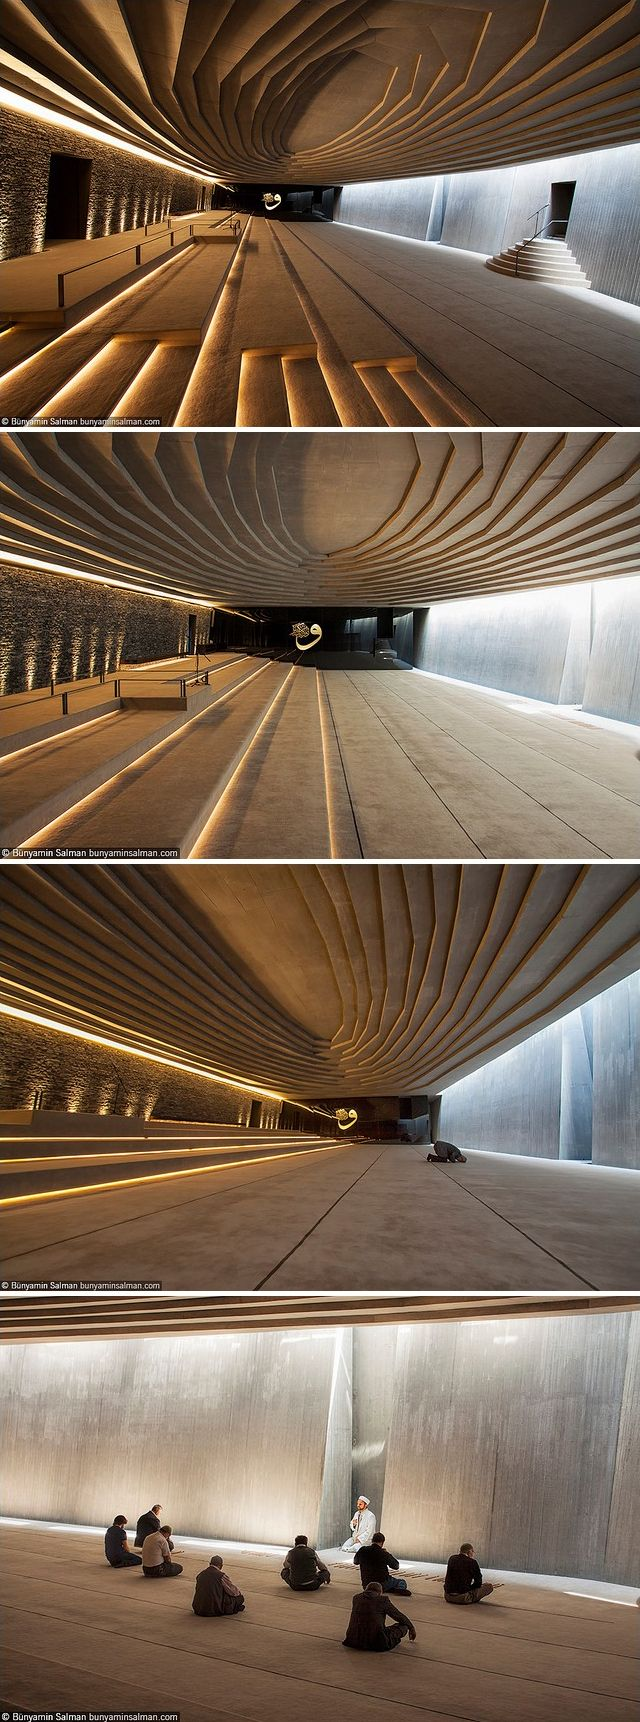 The main hall of Sancaklar Mosque in Istanbul, Turkey. A simple, cave-like space 7 meters below ground with exposed stone and concrete walls. Designed by Emre Arolat Architects (EAA) and built in 2011. Photos by Bünyamin Salman, via Flickr.